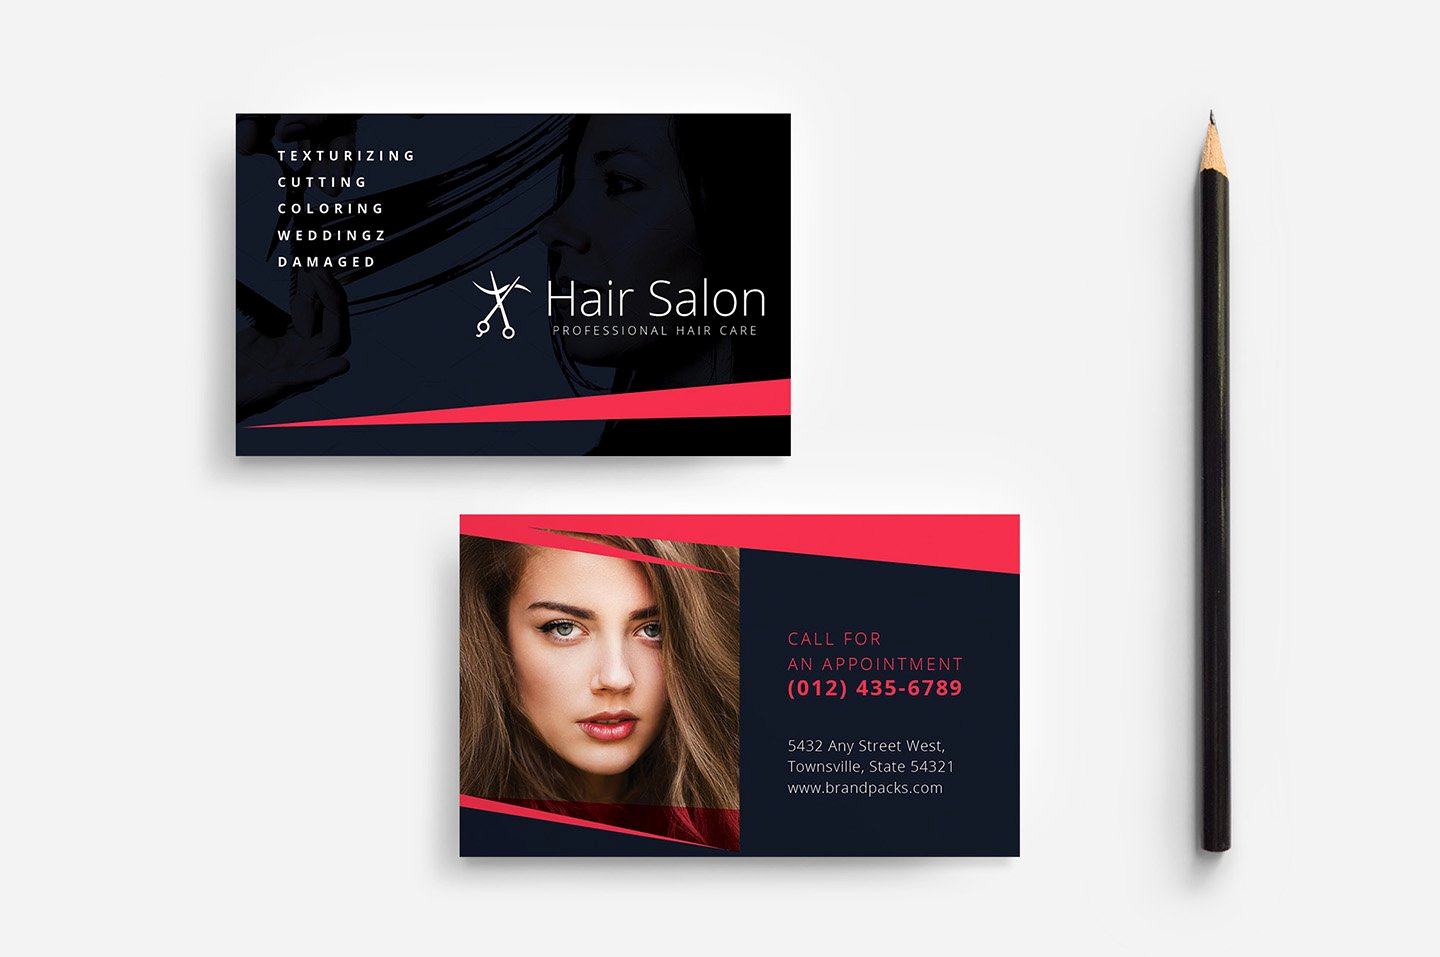 Hair Stylist Business Cards Beautiful Hair Salon Business Card Template Business Card